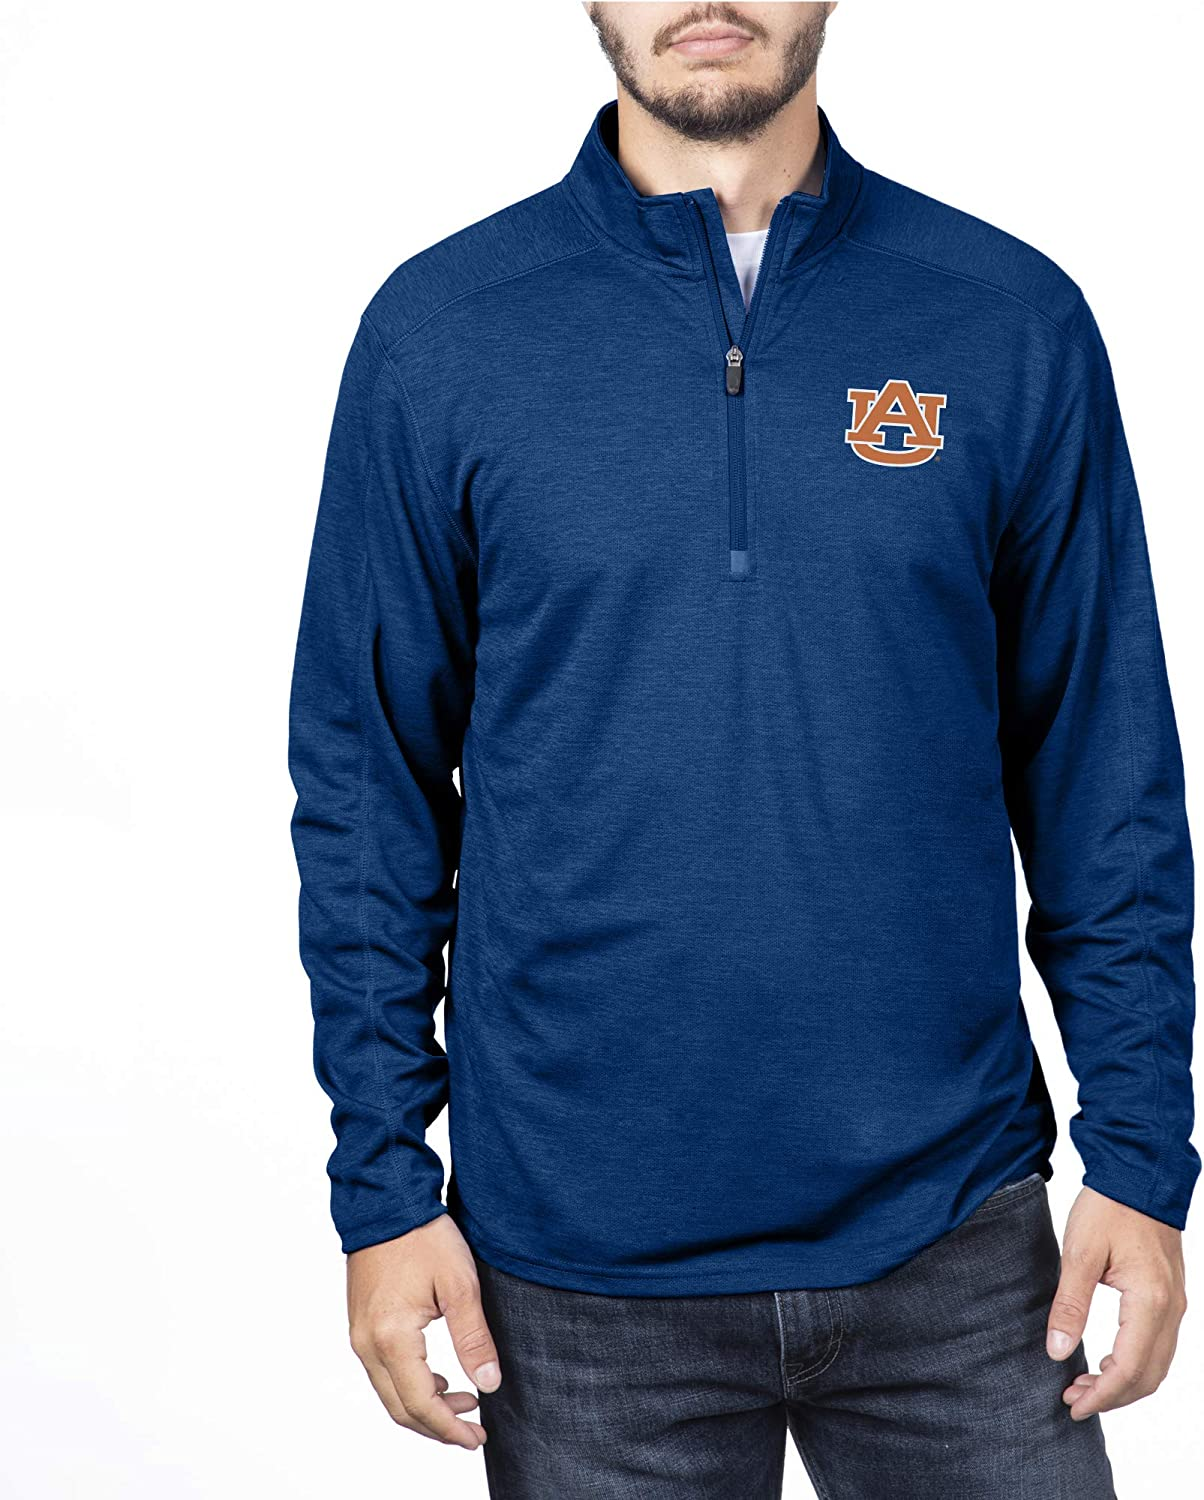 Top of the World Mens Team Color Heathered Poly Half Zip Pullover